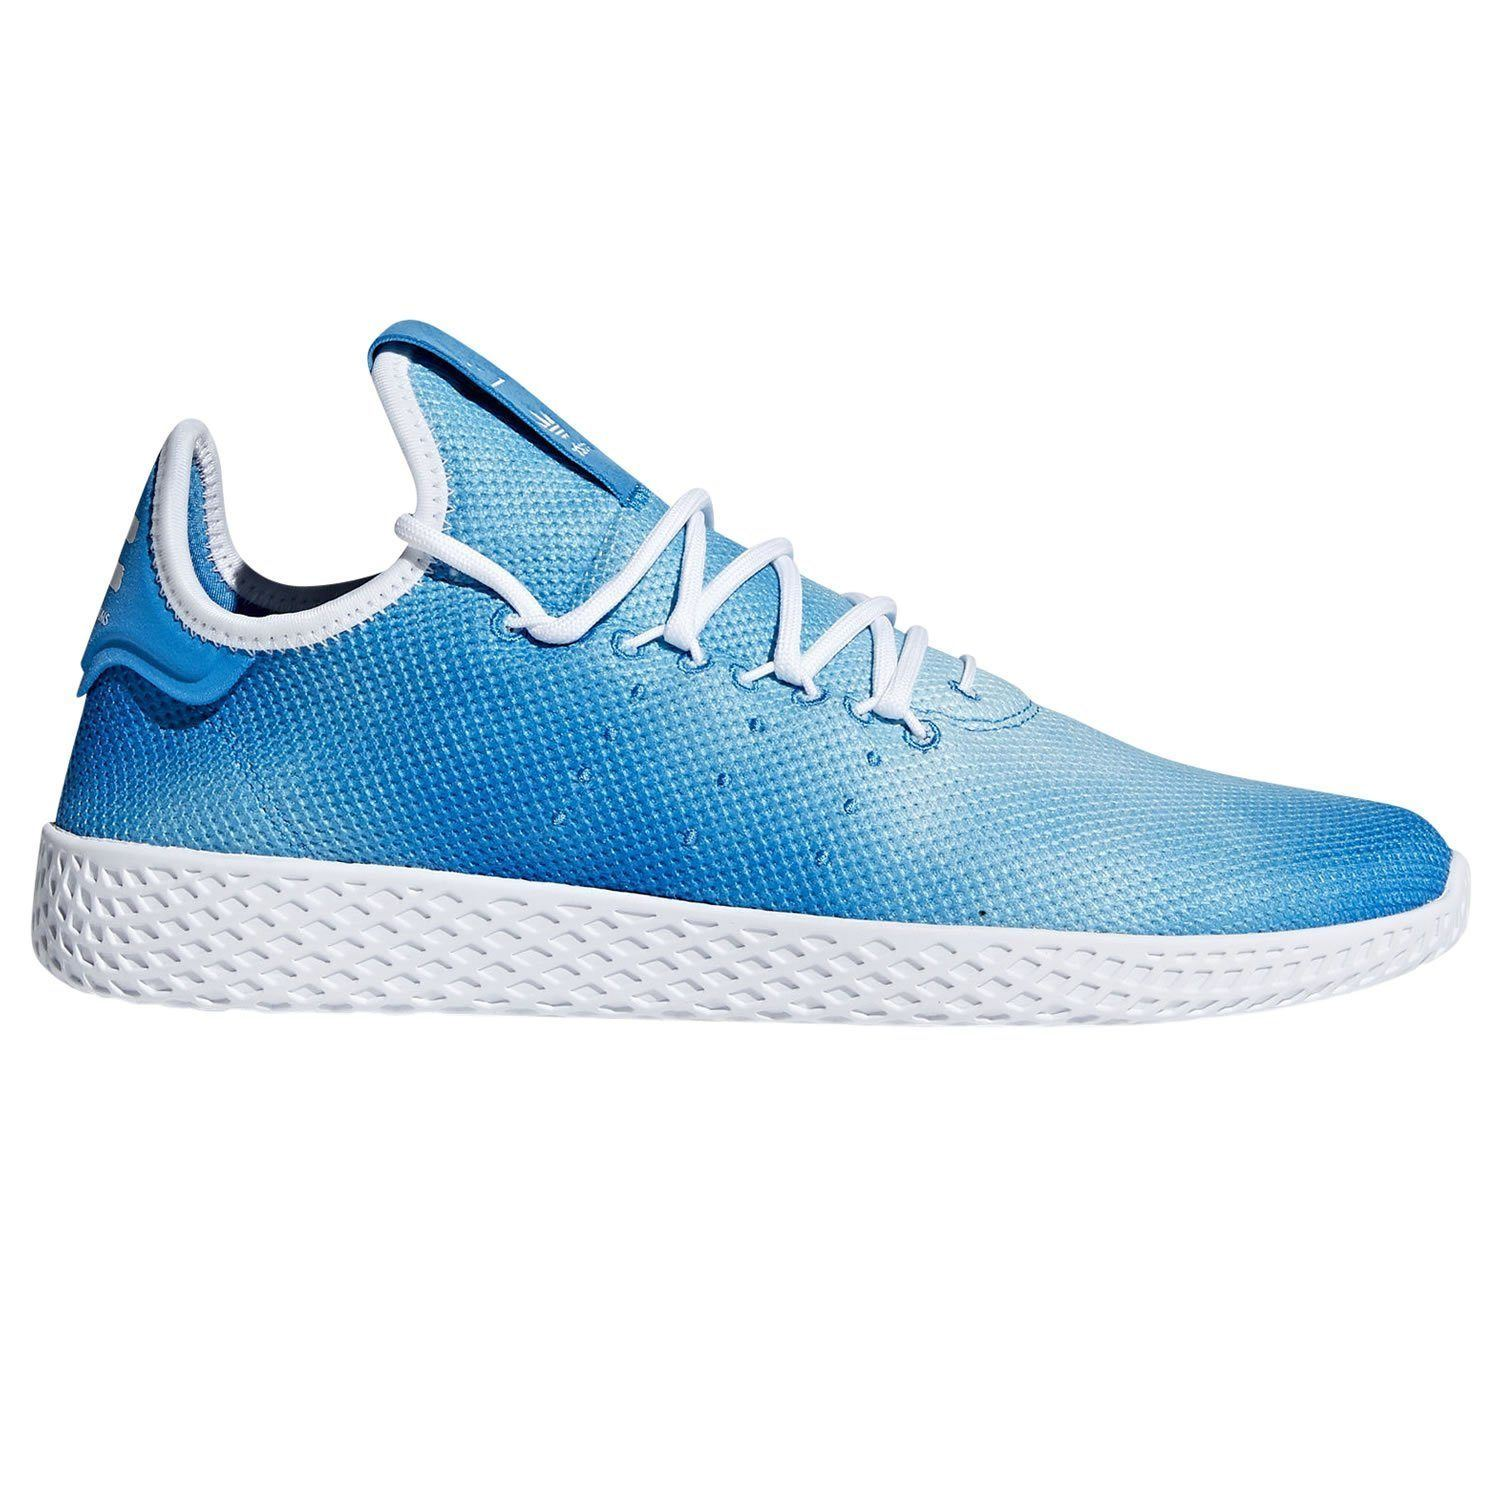 1bc4be58b Details about adidas PHARRELL WILLIAMS HU TENNIS SHOES BLUE TRAINERS  SNEAKERS SHOES MEN S NEW